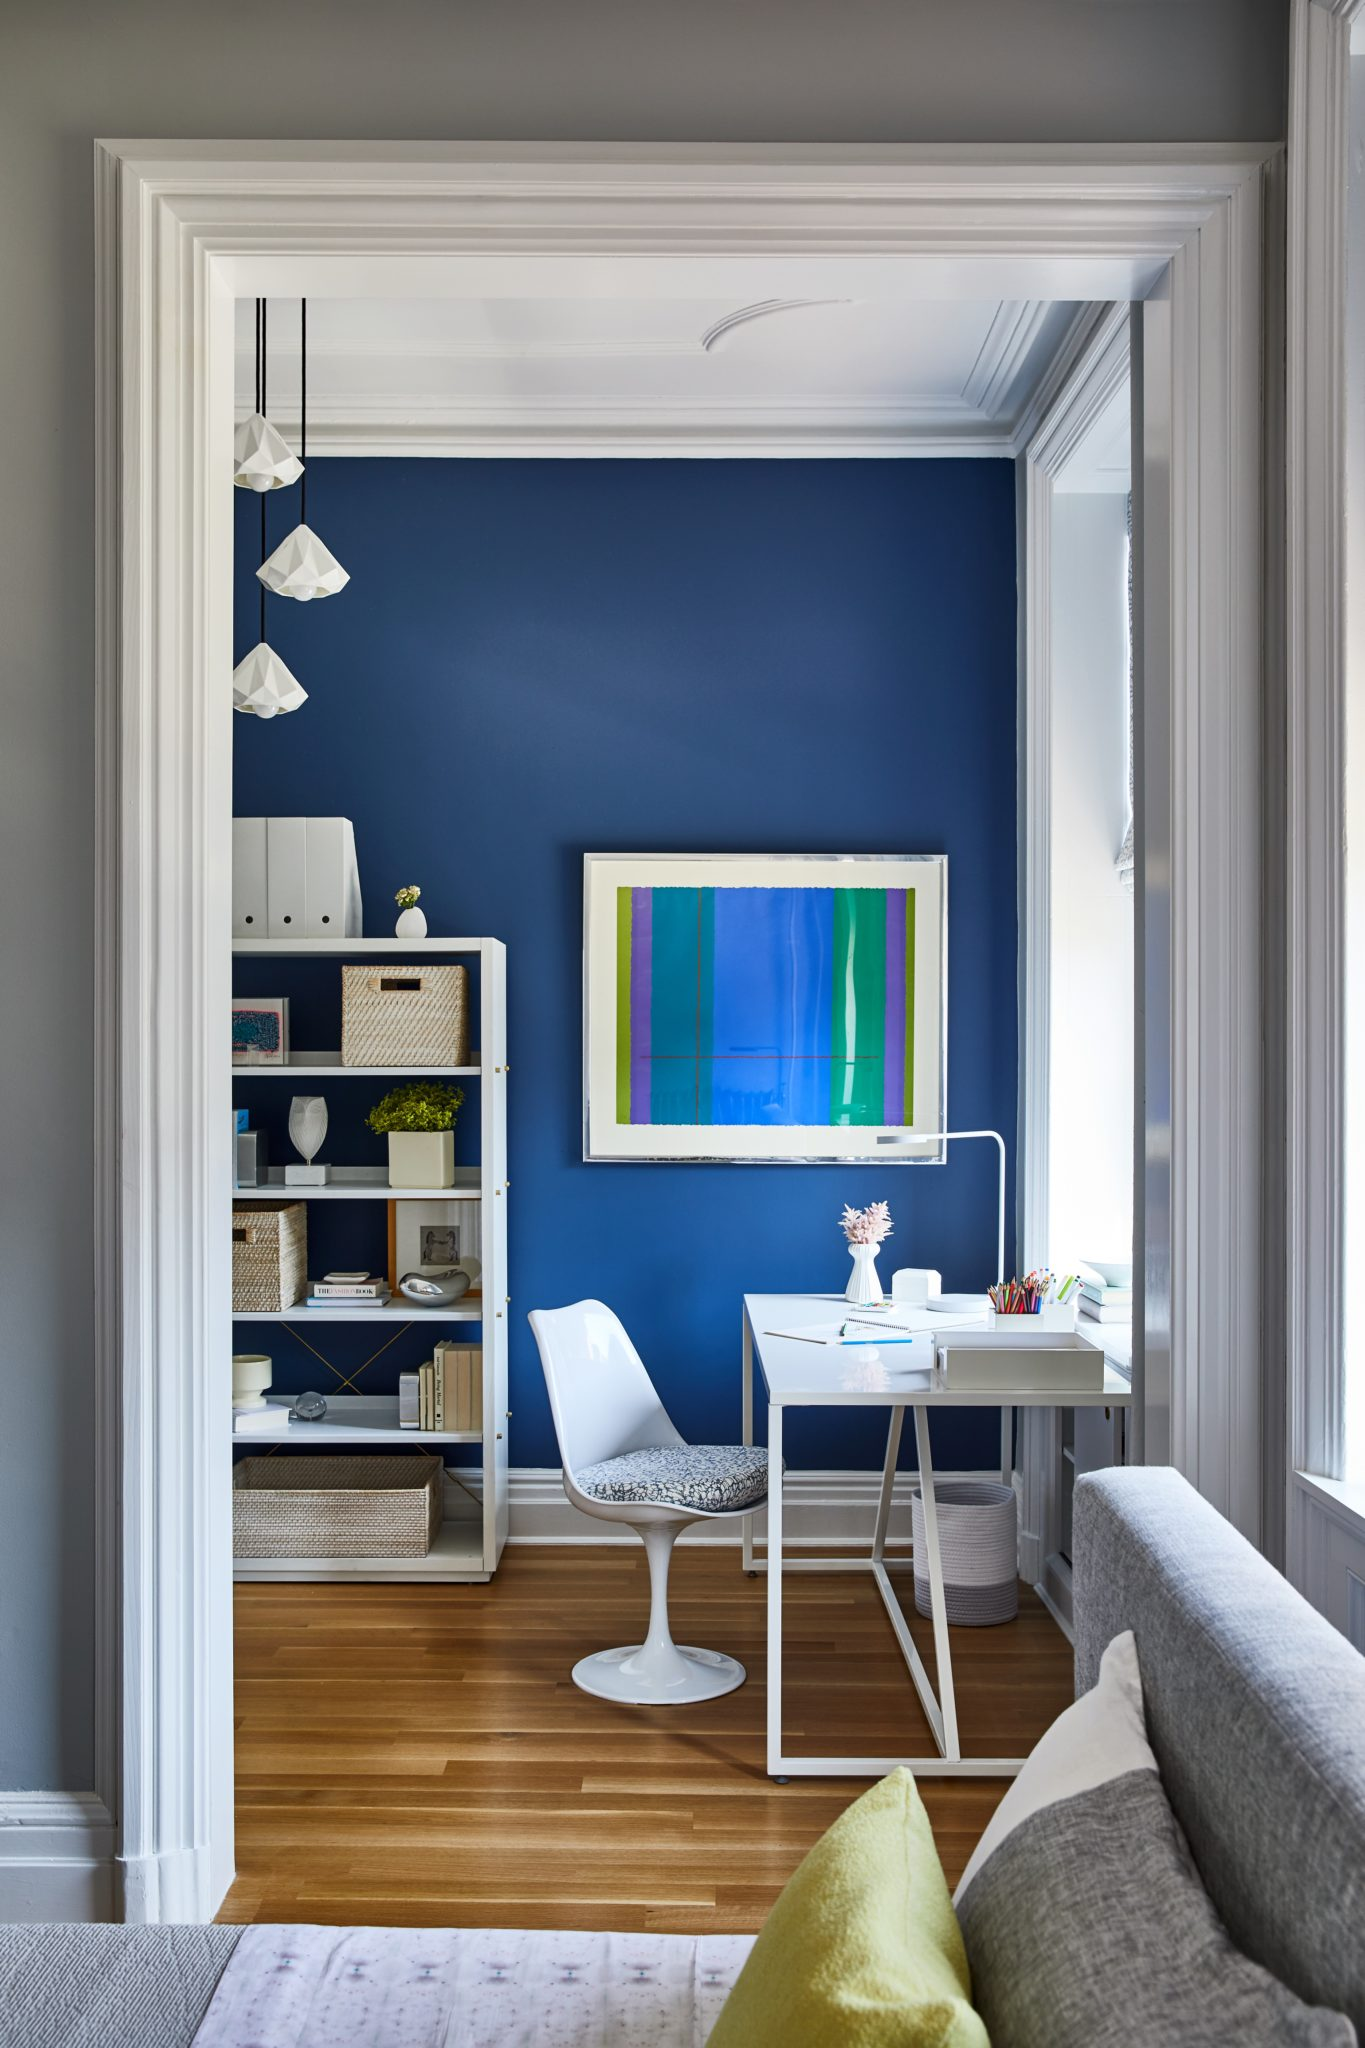 Enger also created a clever workspace within a small alcove of the child's bedroom. Kensington Blue paint fromBenjamin Mooredecorates the accent wall. A lacquered Hayneedle chair with Rebecca Atwood fabric on the seat is set in front of a Blue Dot desk. The orb-style chandelier is from Horne, and the vintage artwork was sourced through J. PATRYCE DESIGN; the designer curates a collection of vintage goodsthat her clients can choose from for their projects.